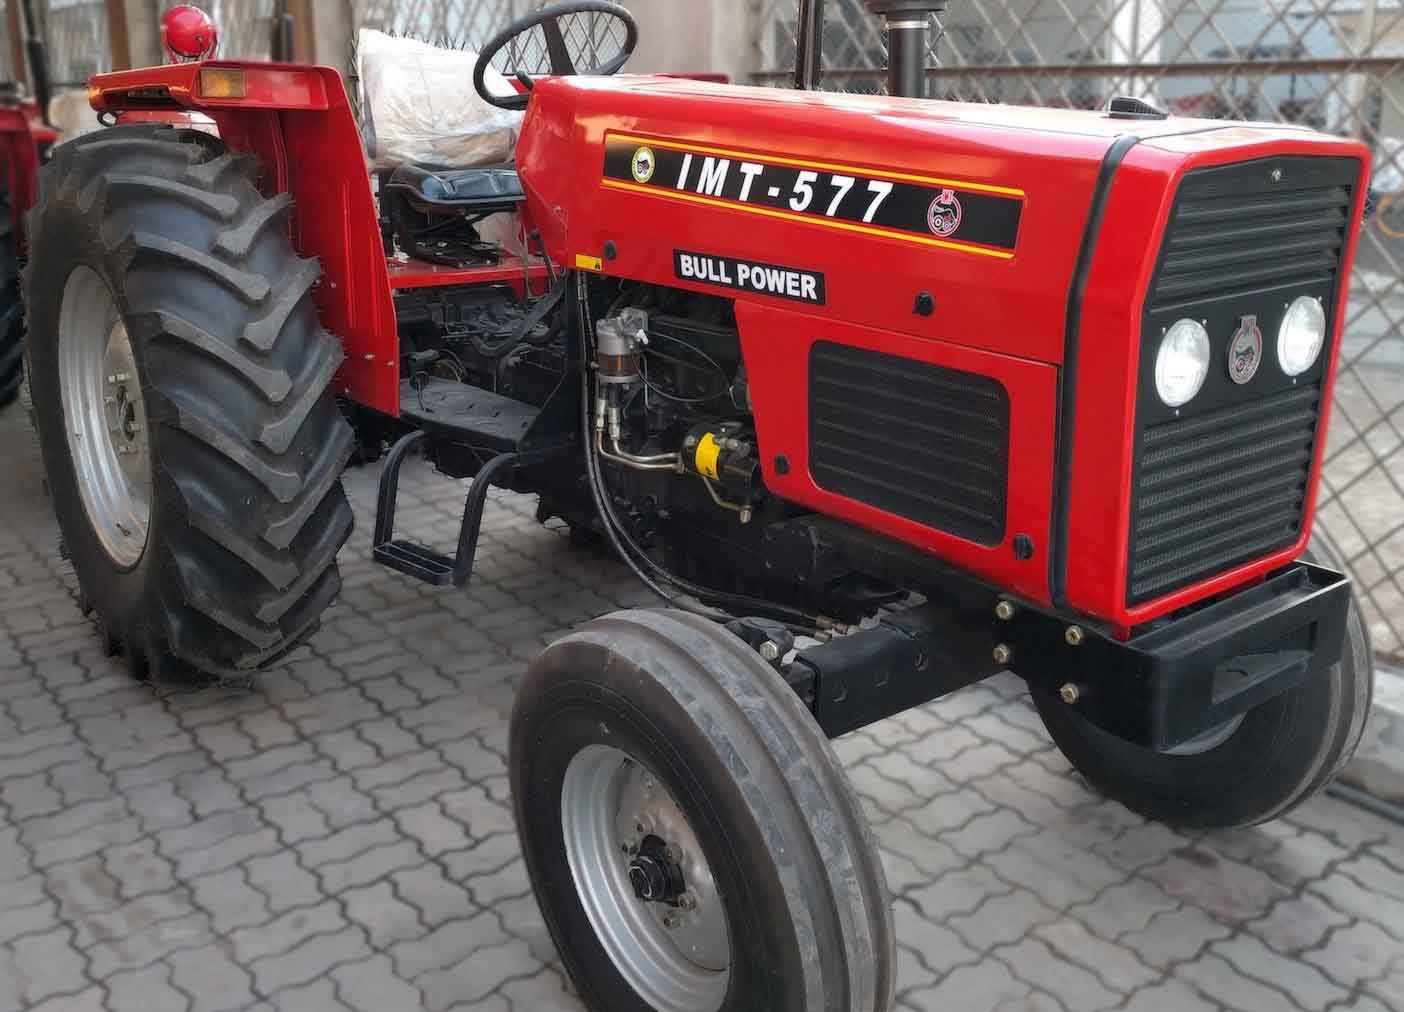 IMT 577 Tractor Price in Pakistan